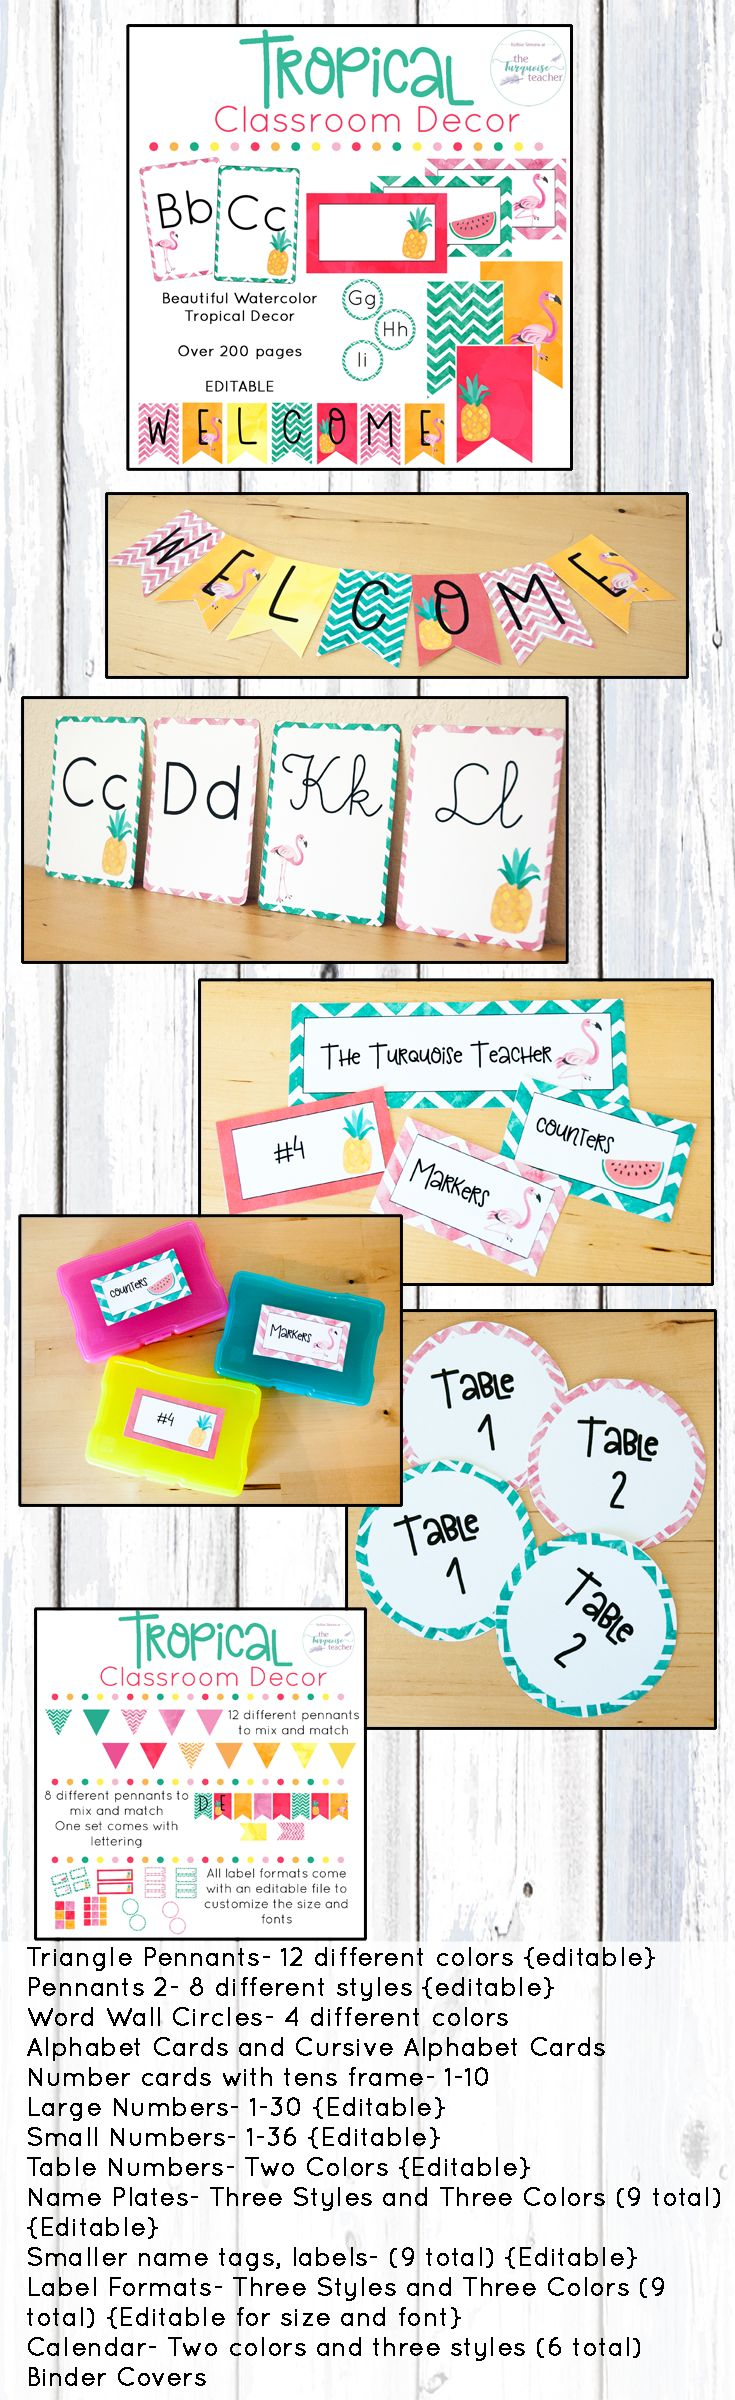 Tropical Classroom Decor | Fully Editable | Flamingos | Summer | Beach | Pineapple | Flamingo | Watermelon | Bring a little color and flair into your classroom! This set comes with so many different colors, styles, and clipart for you to customize your classroom ( over 200 pages! ). Created to allow you to mix and match your favorite colors to bring a little island breeze into your room. All templates come in an editable format to make your own names tags, locker tags, labels, signs, class…